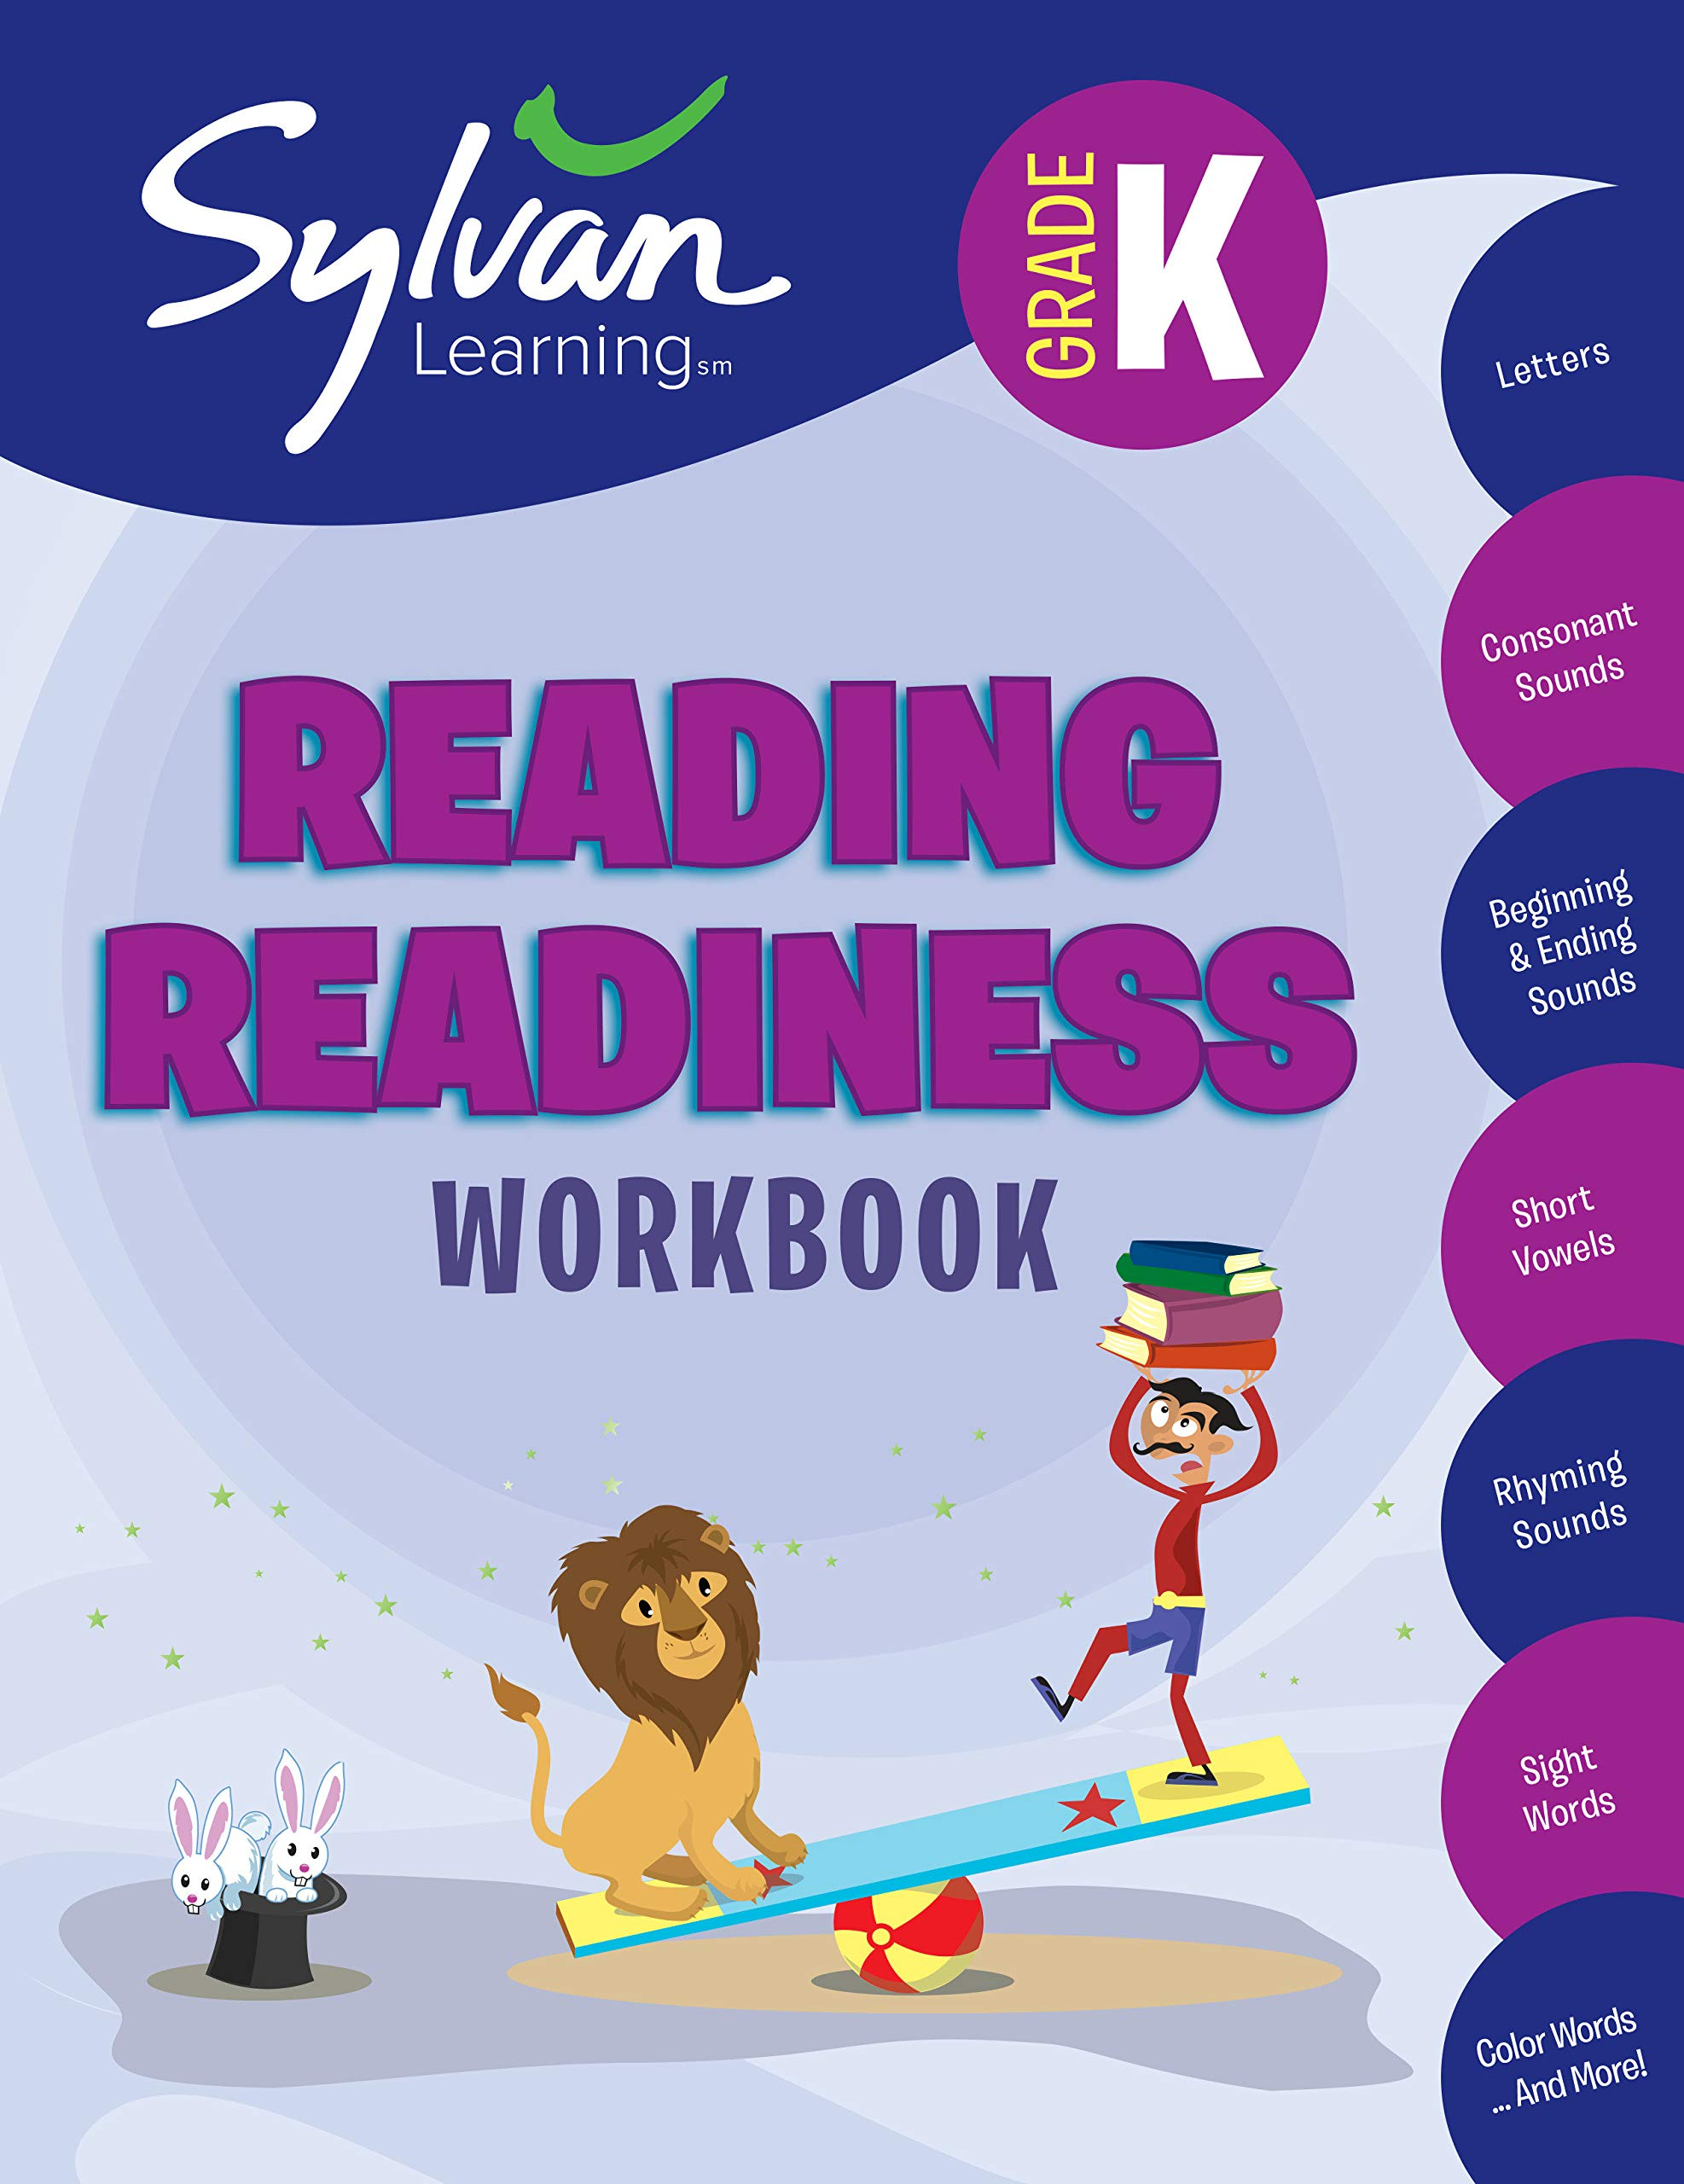 Amazon.com: Kindergarten Reading Readiness Workbook: Activities ...